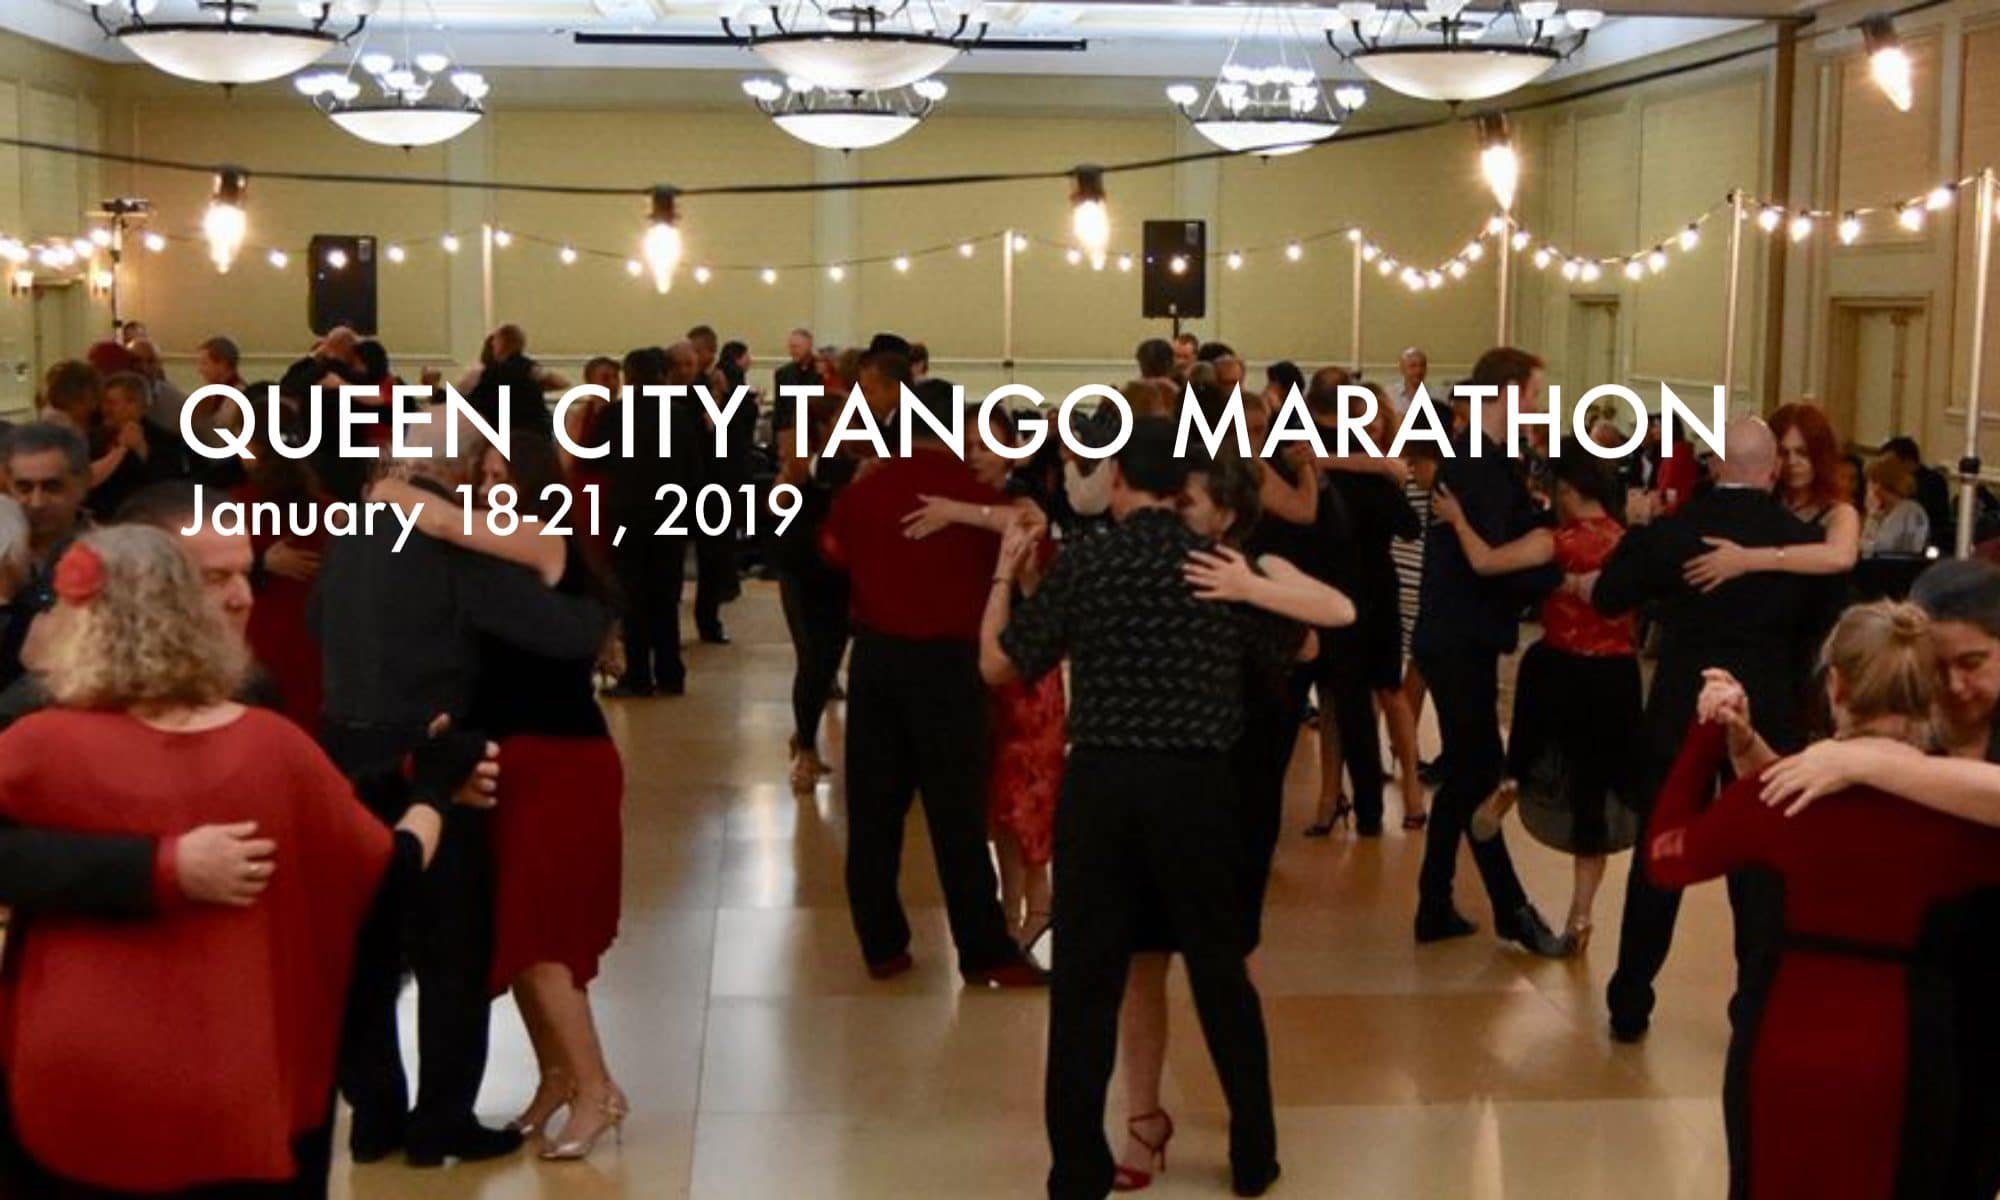 Queen City Tango marathon 2019 - Home